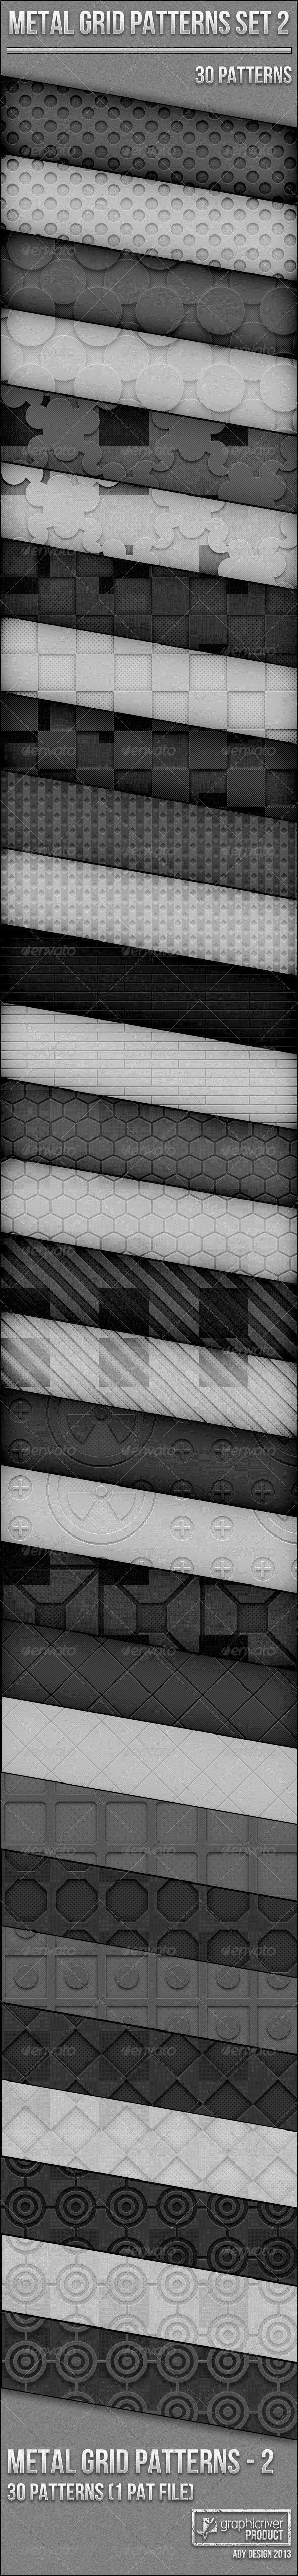 Metal Grid Patterns for Photoshop